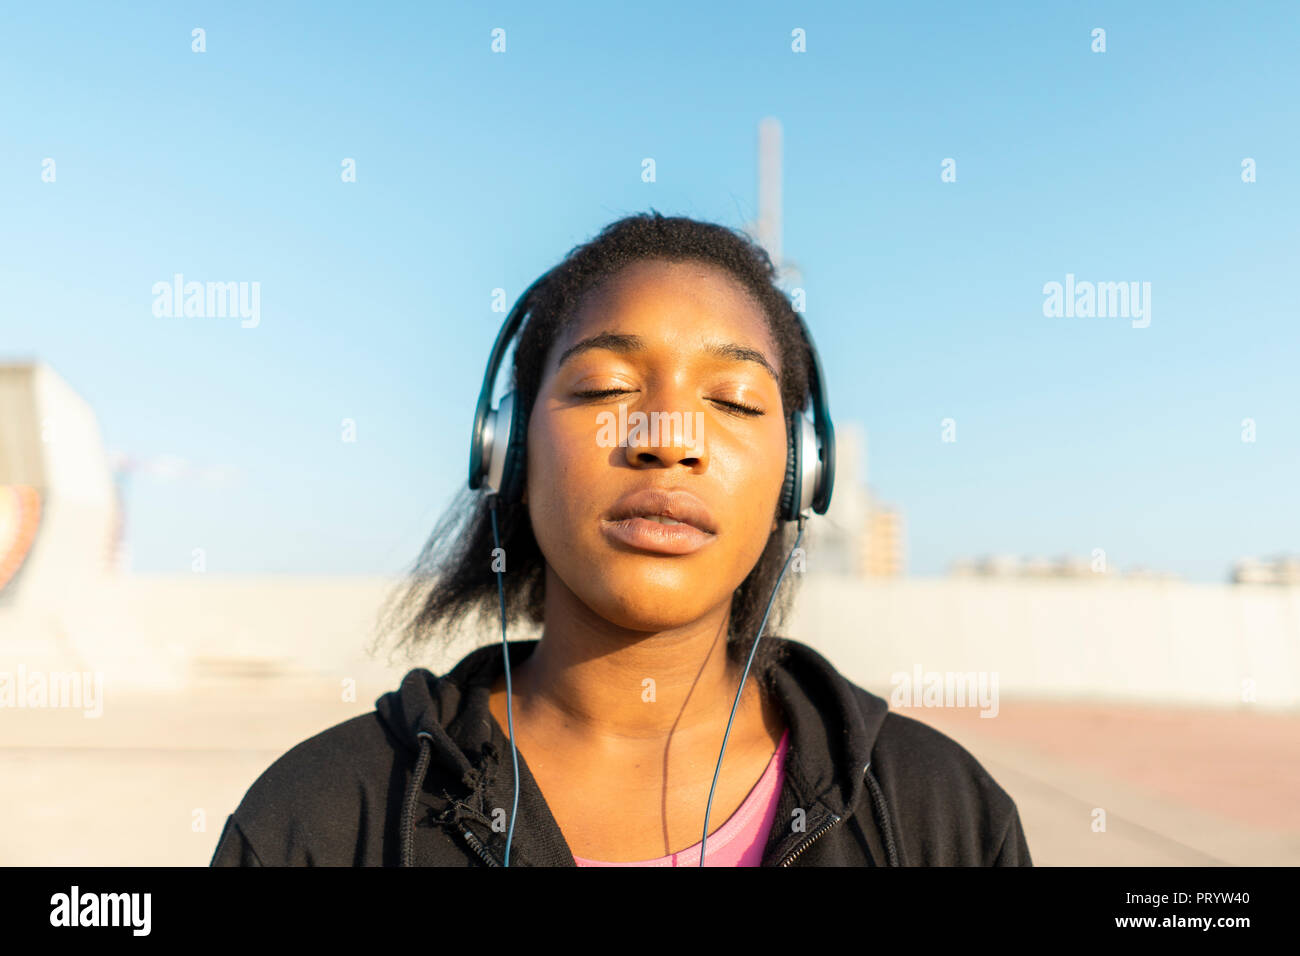 Young sportive woman listening music with headphones, eyes closed - Stock Image